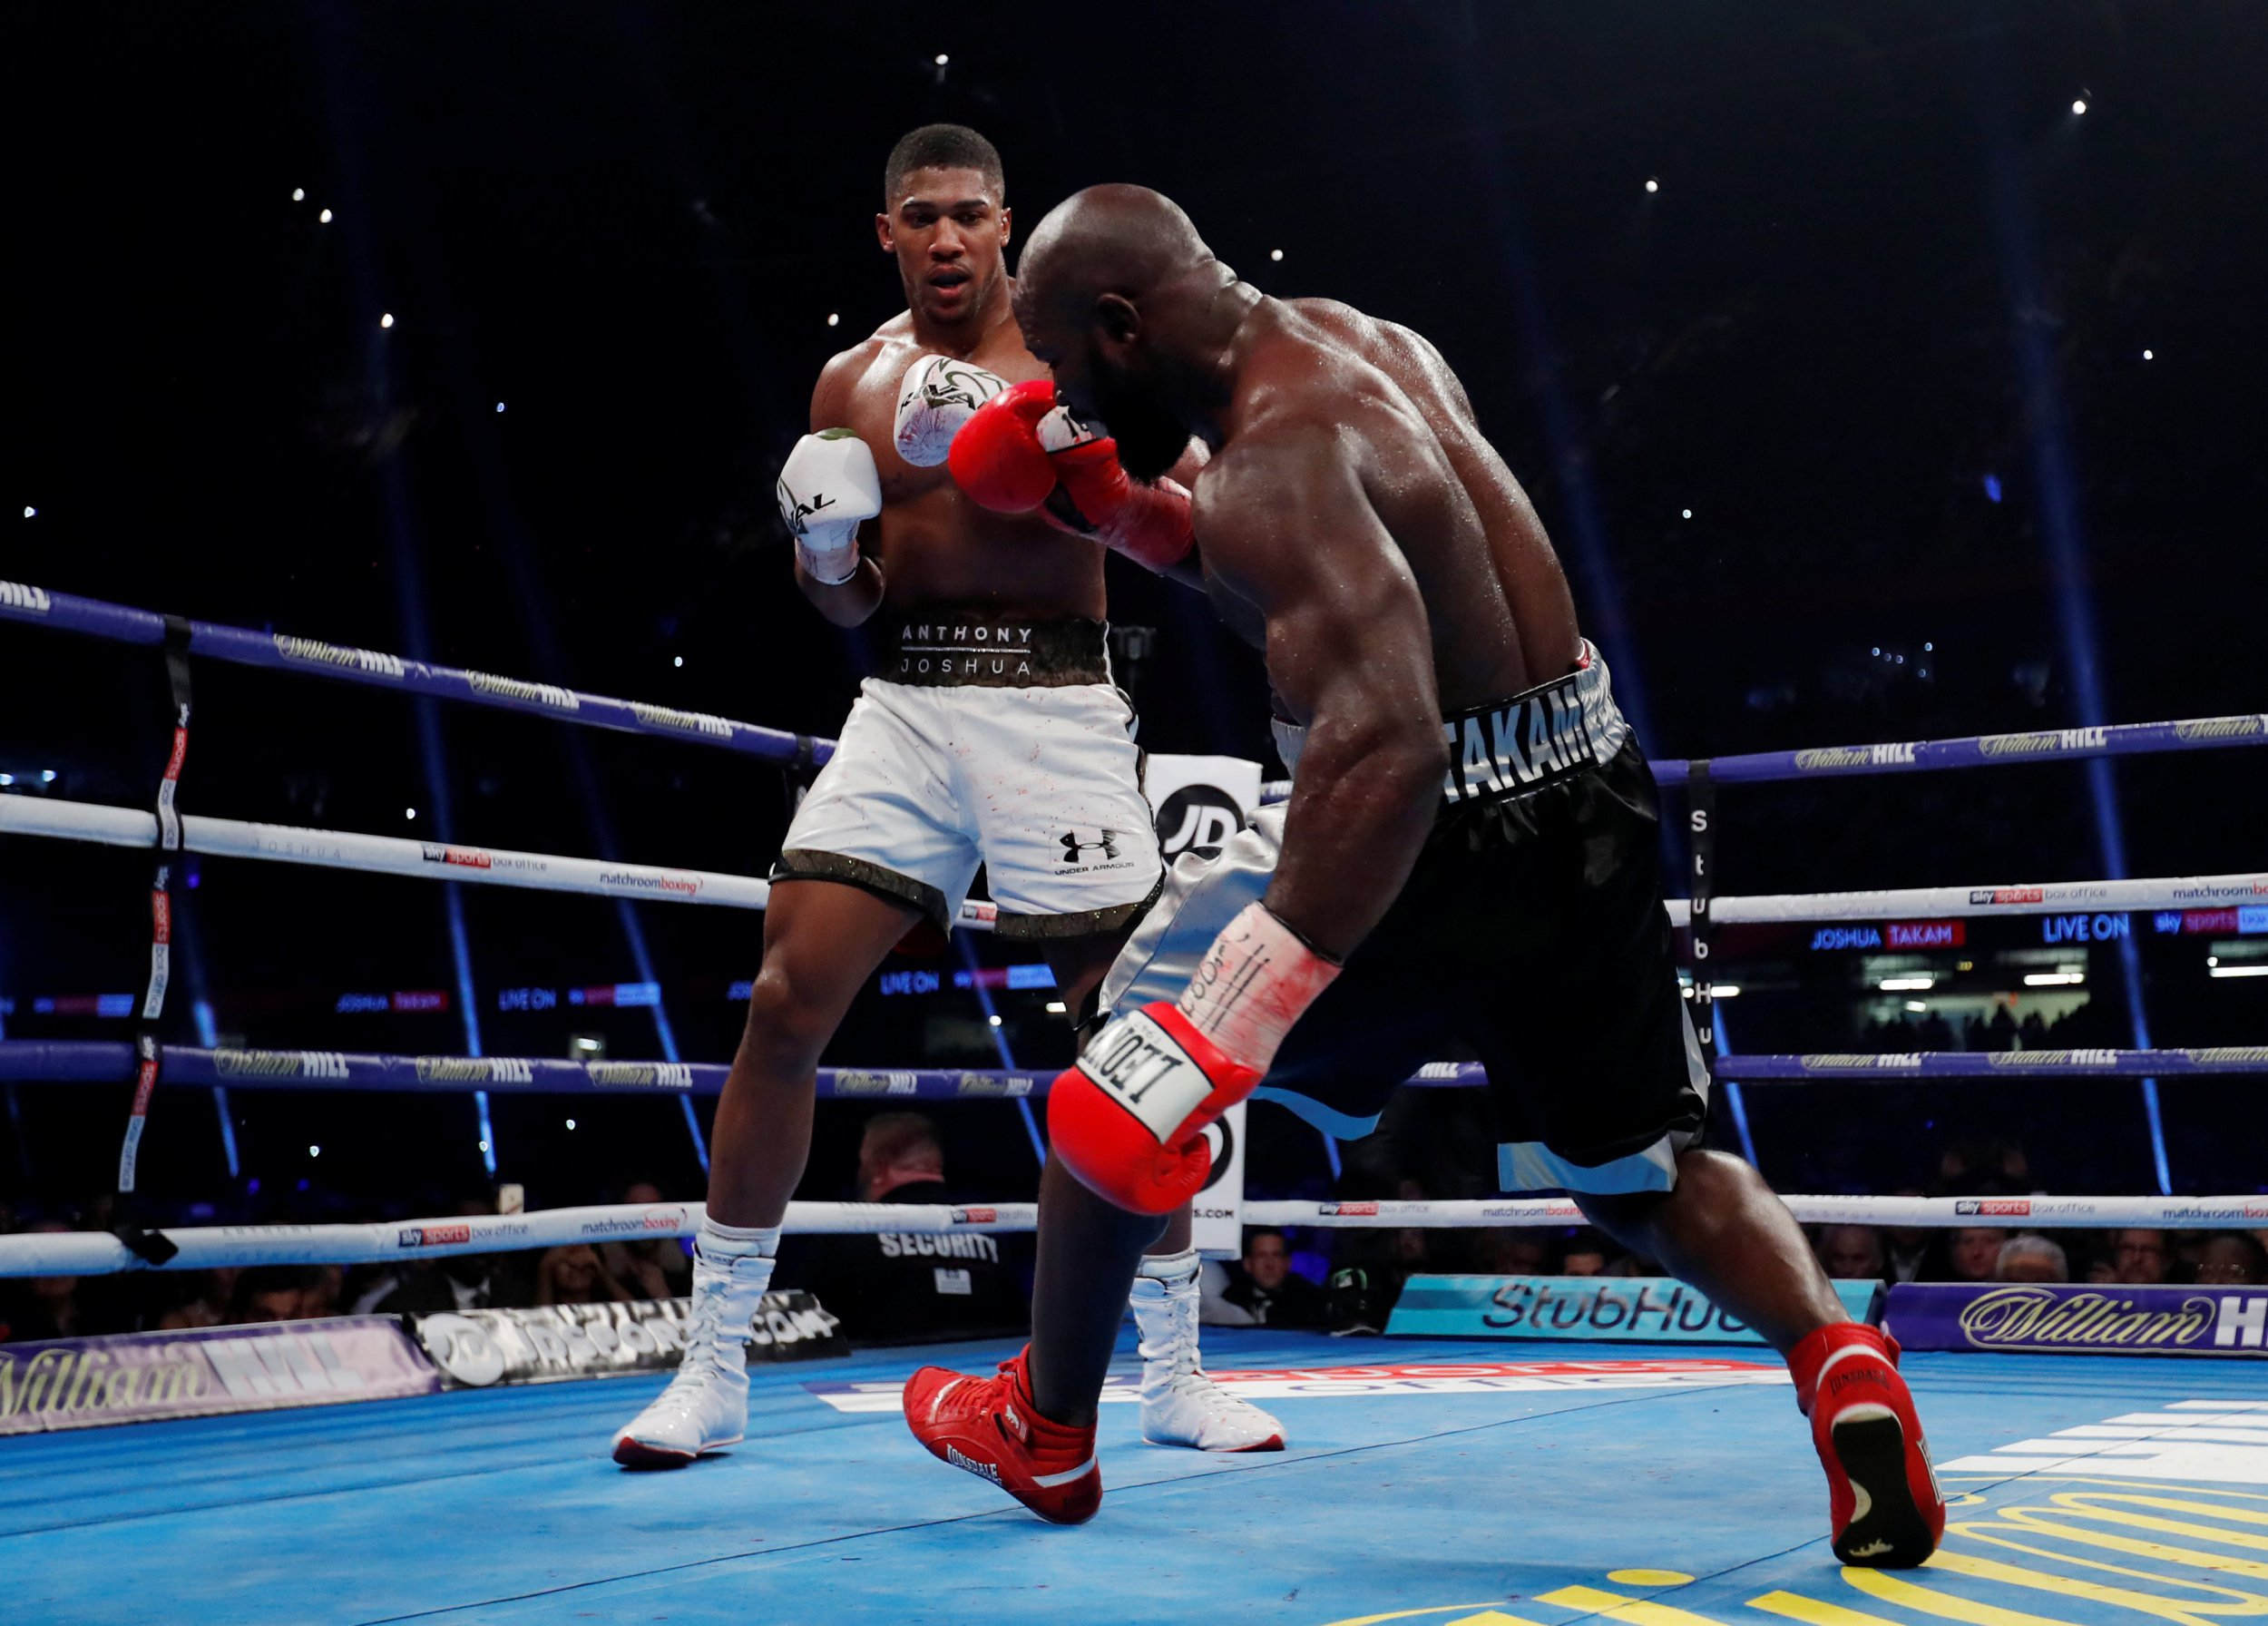 Anthony Joshua victory over Carlos Takam averages 334,000 US viewers on Showtime